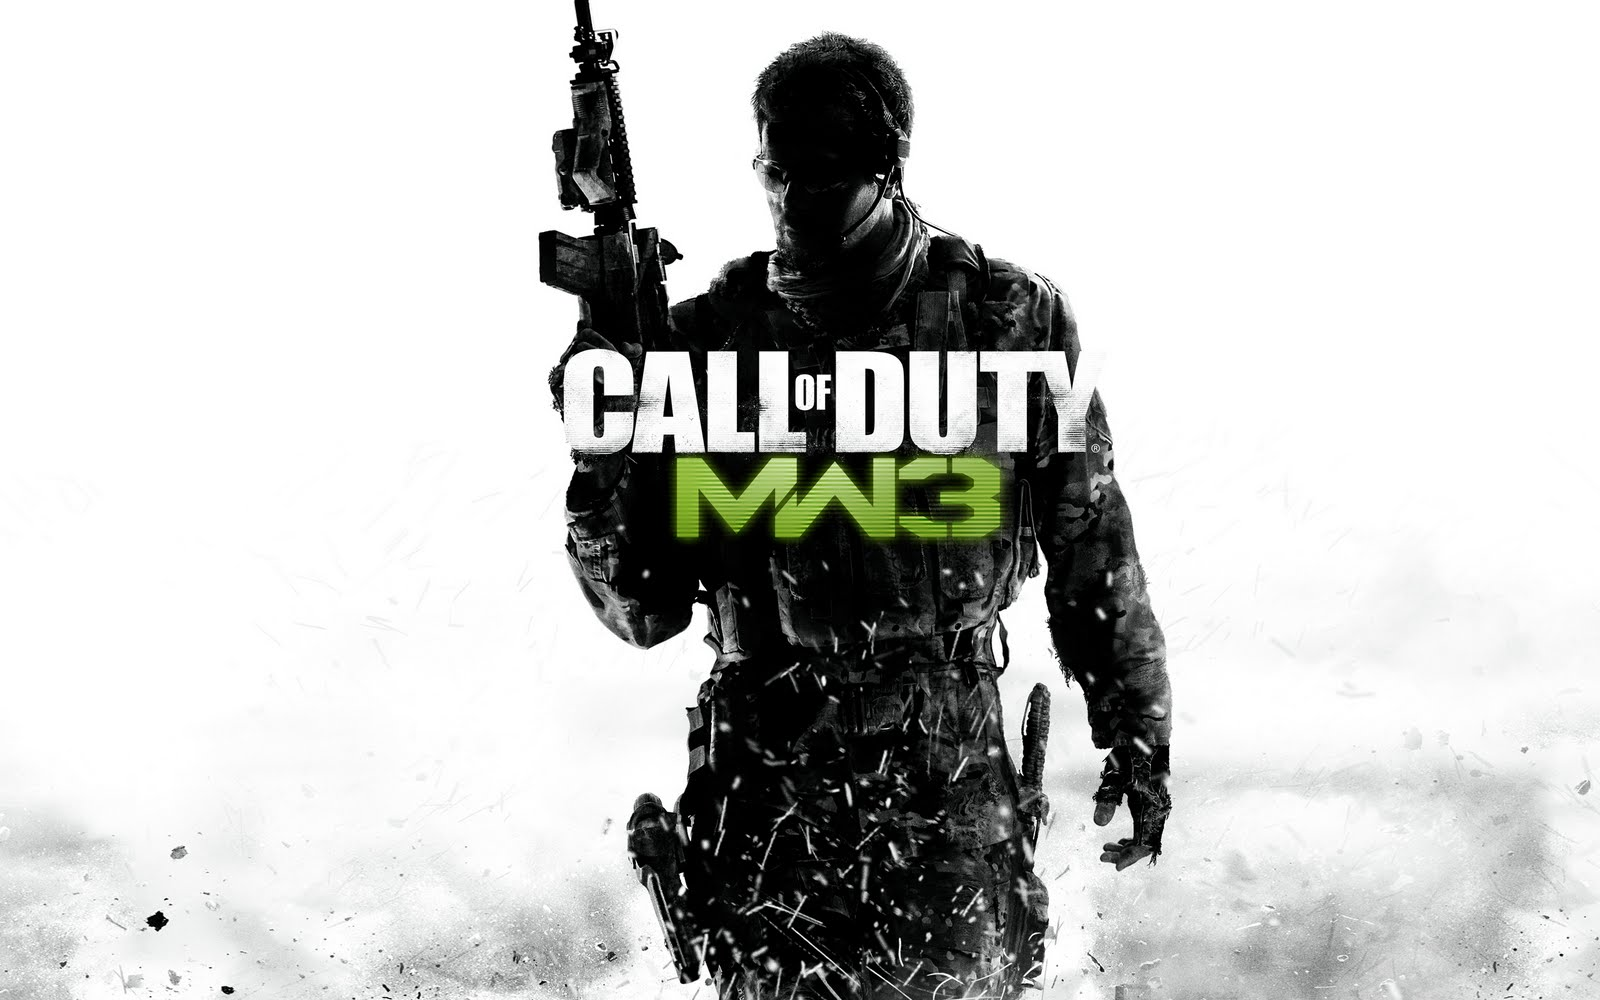 Call Of Duty Modern Warfare: 3 - HD Game Wallpapers - GamesCay